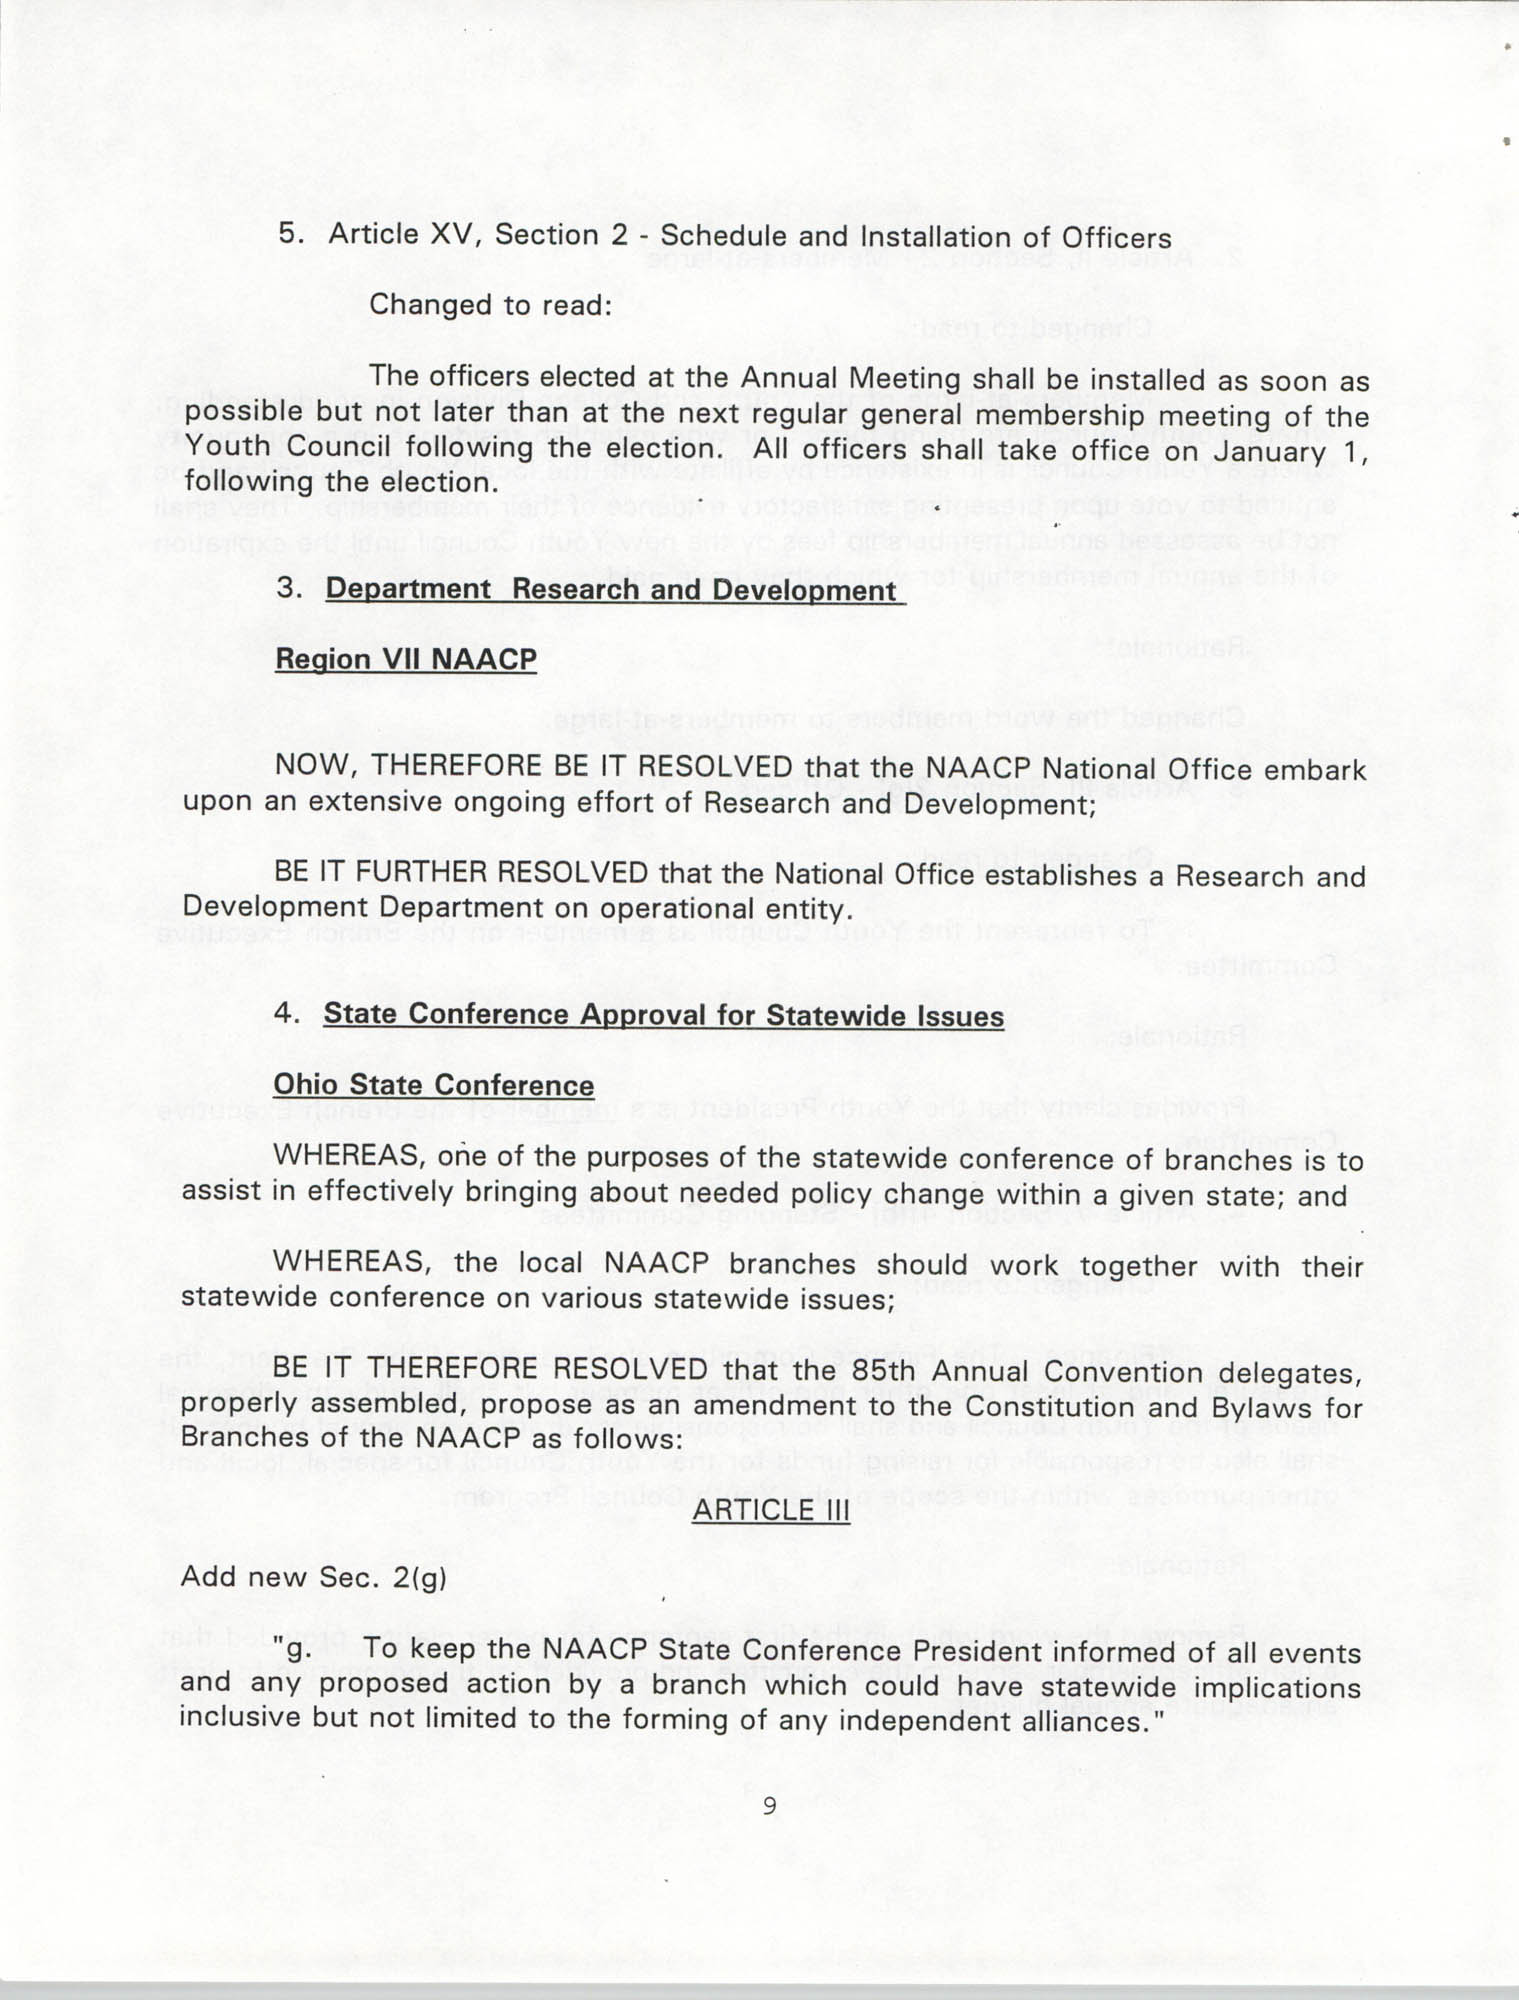 Resolutions Submitted Under Article X, Section 2 of the Constitution of the NAACP, 1994, Page 9